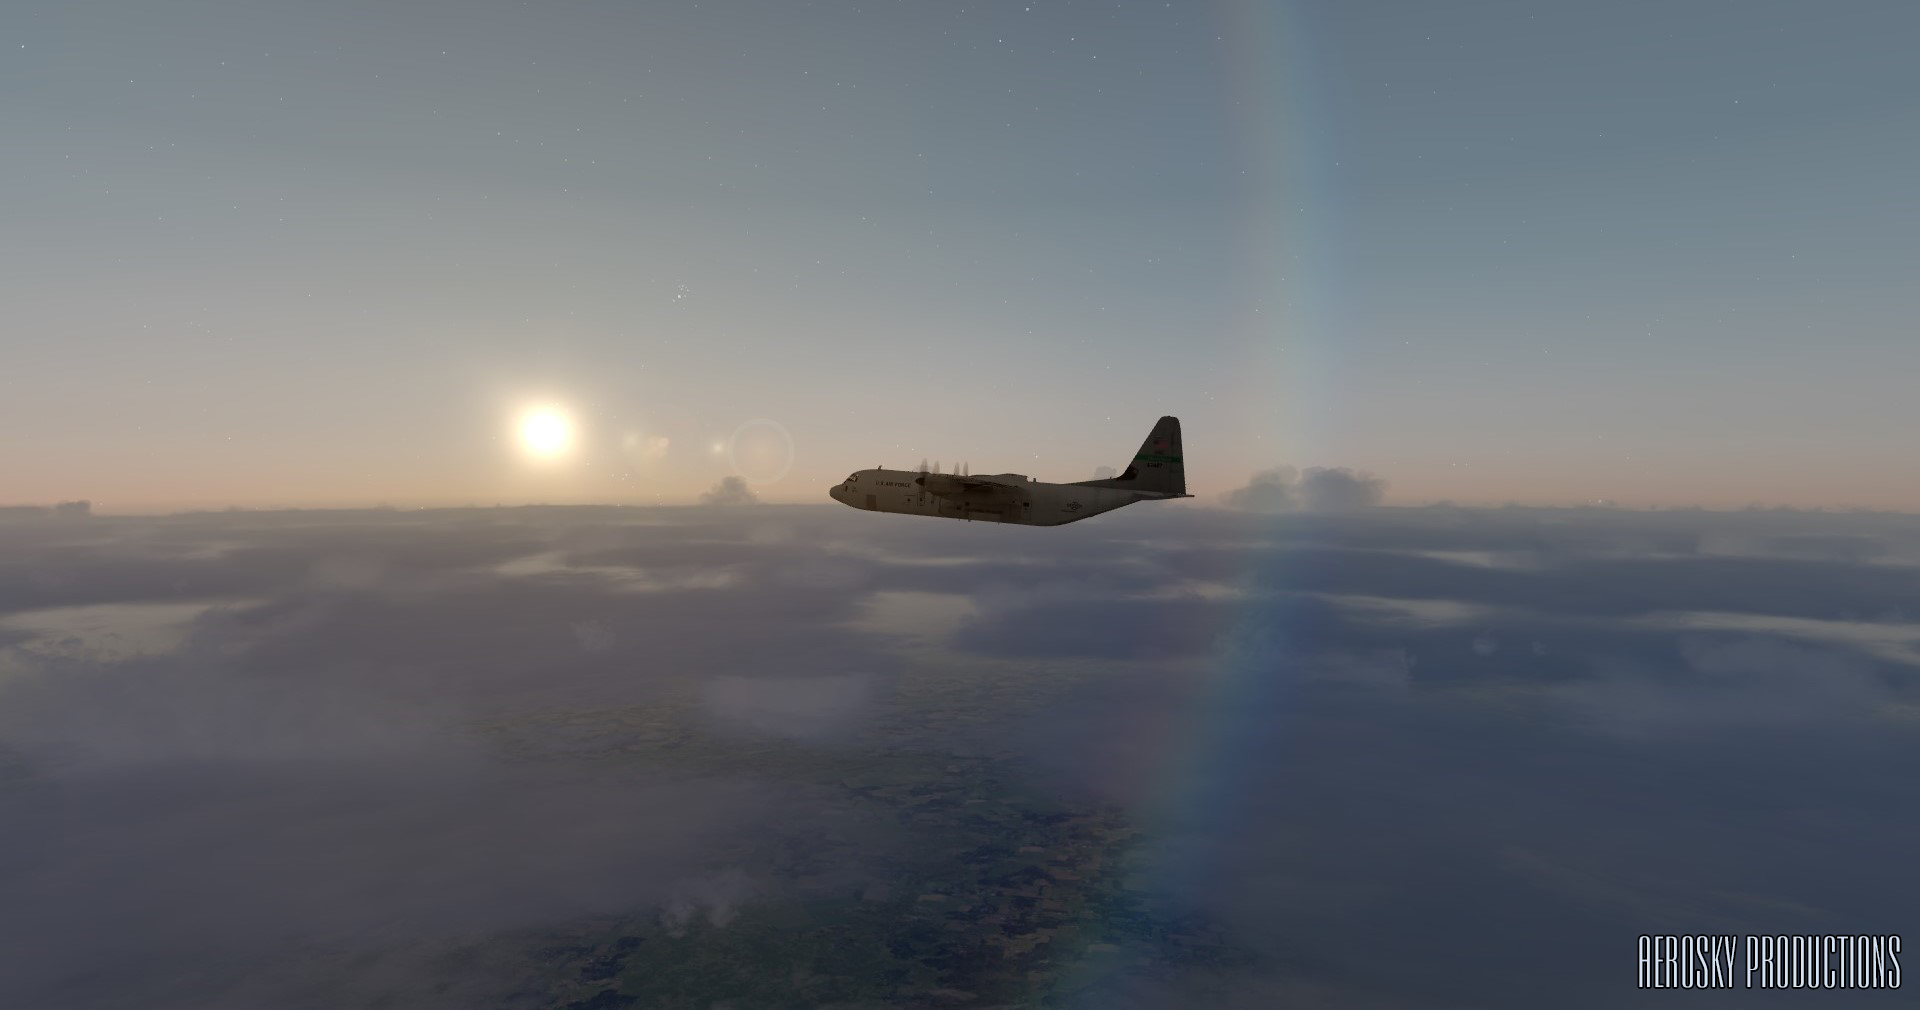 AEROSKY PRODUCTION - ALTERNATIVE SHADERS FOR P3D 4.5